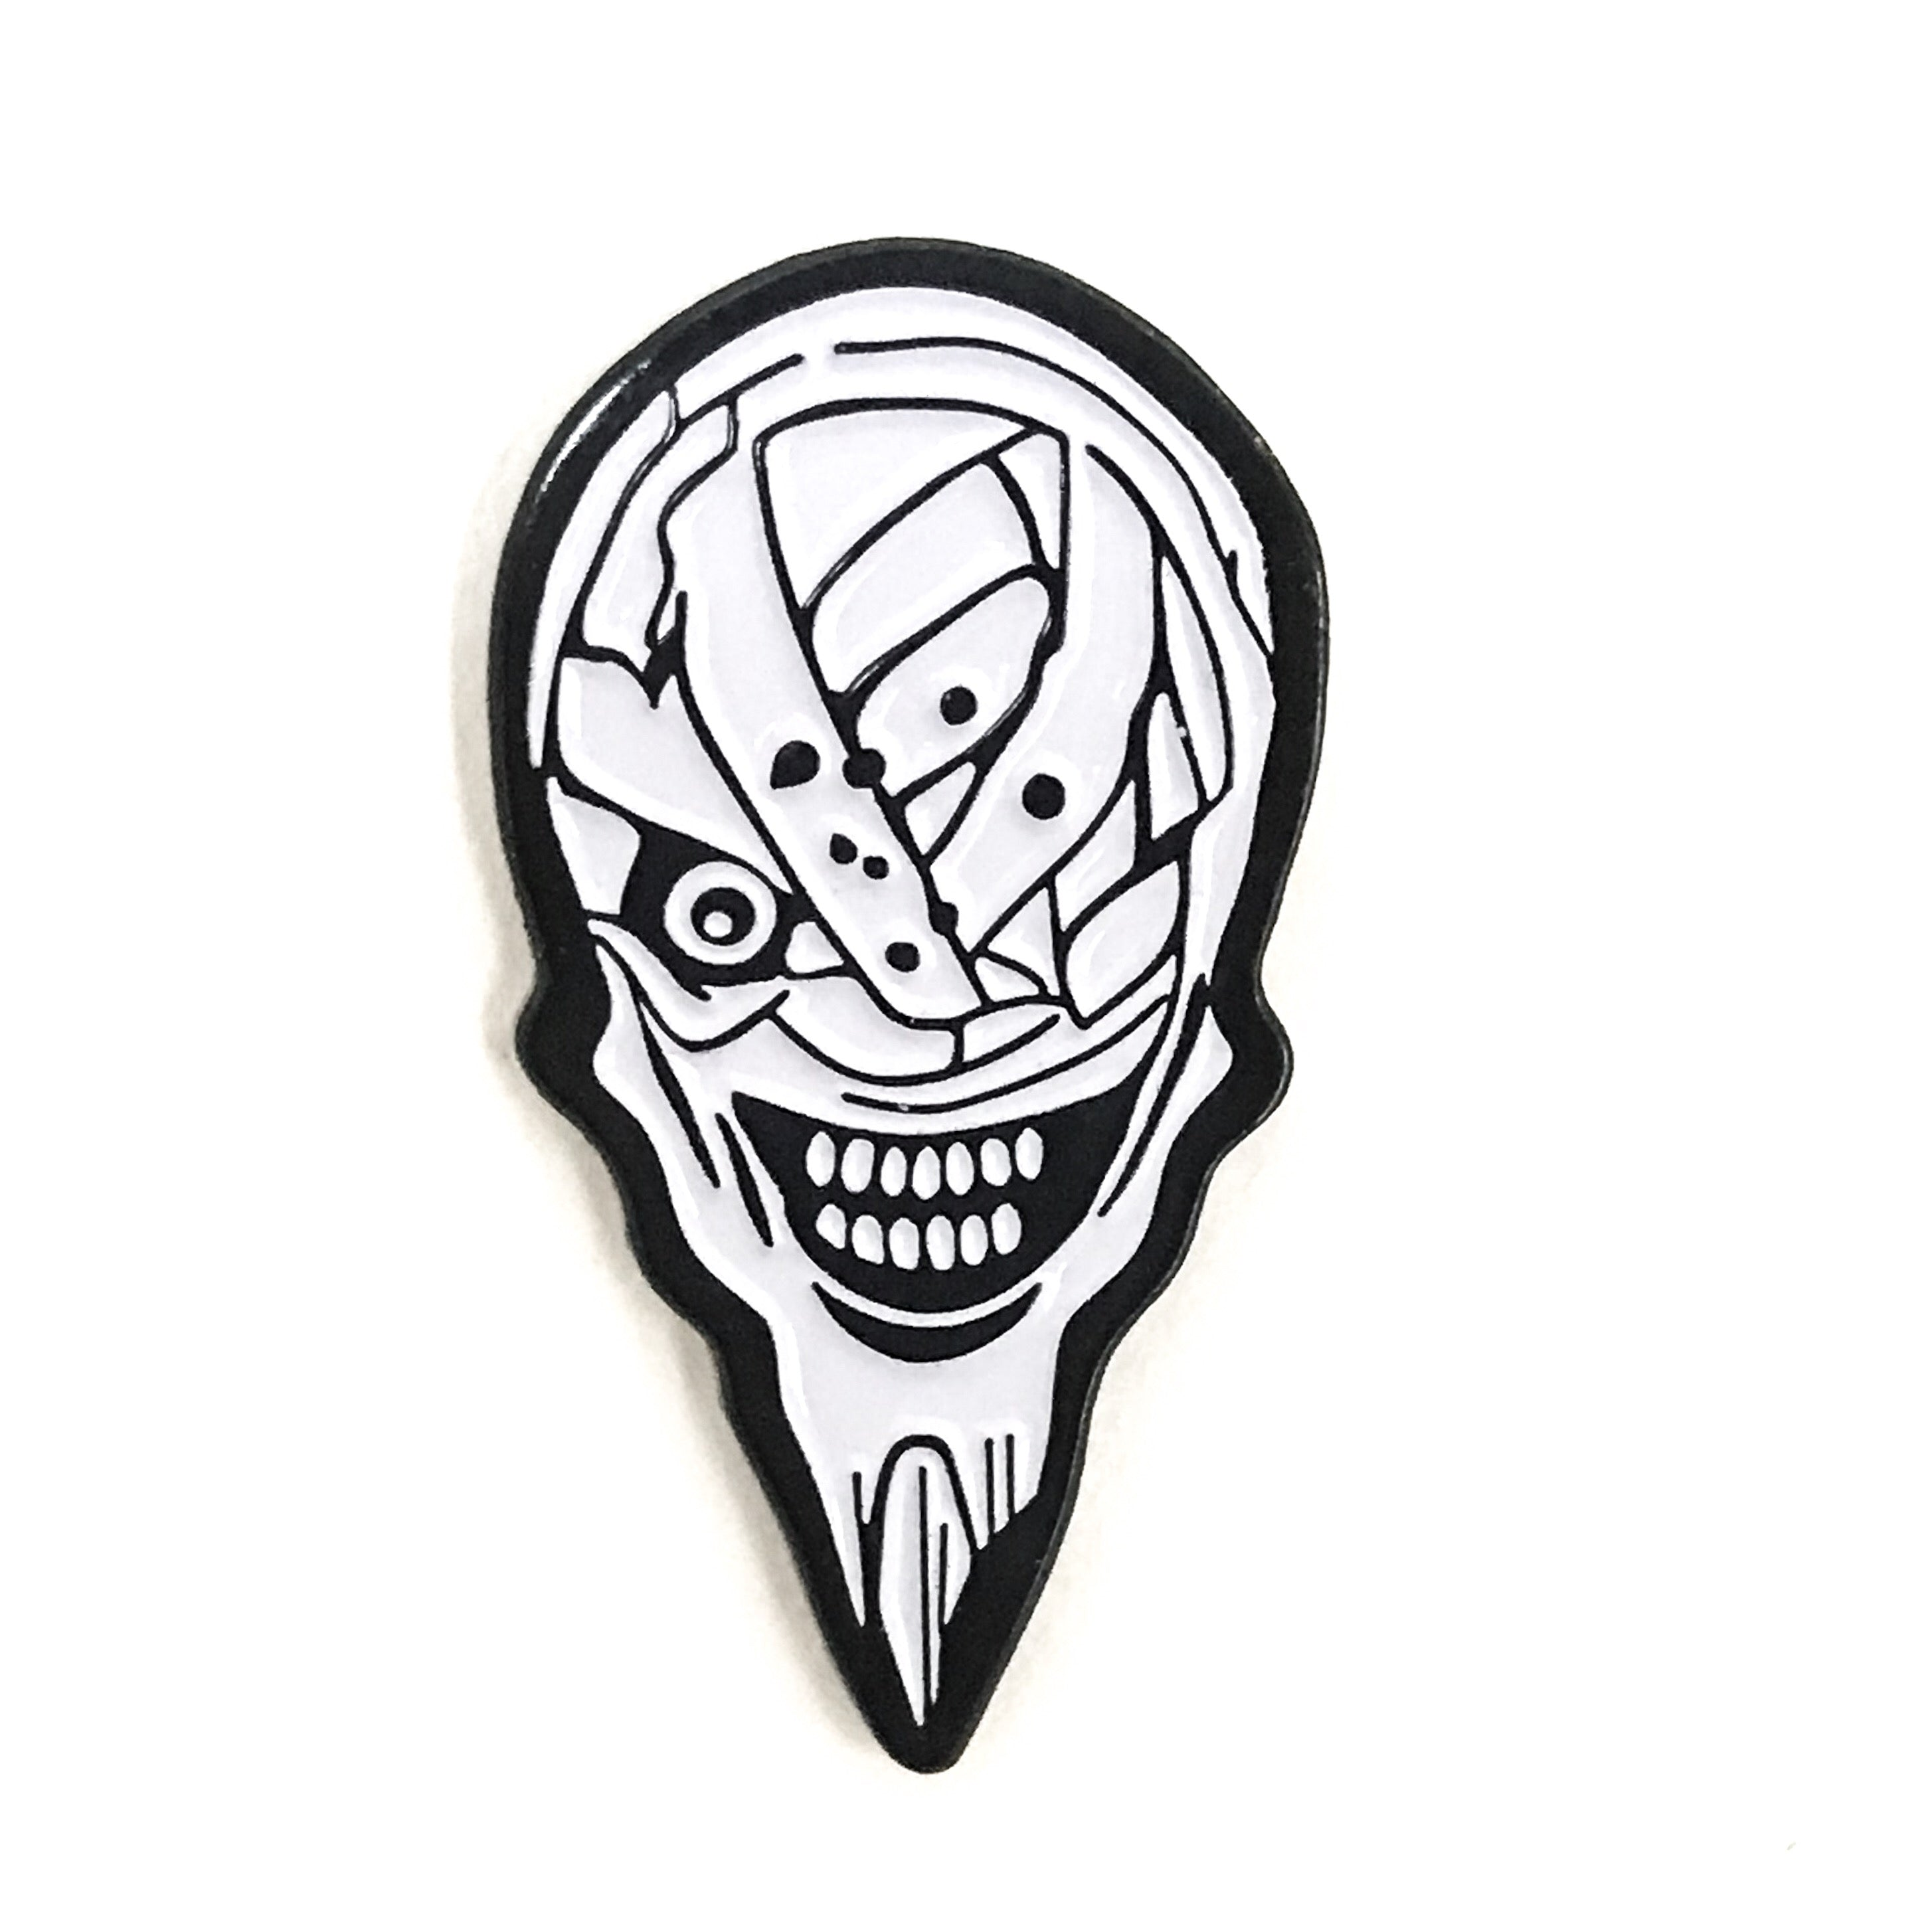 Geek Lord Mecha Soft Enamel Pin anime soft enamel pins japan anime pins japanese manga